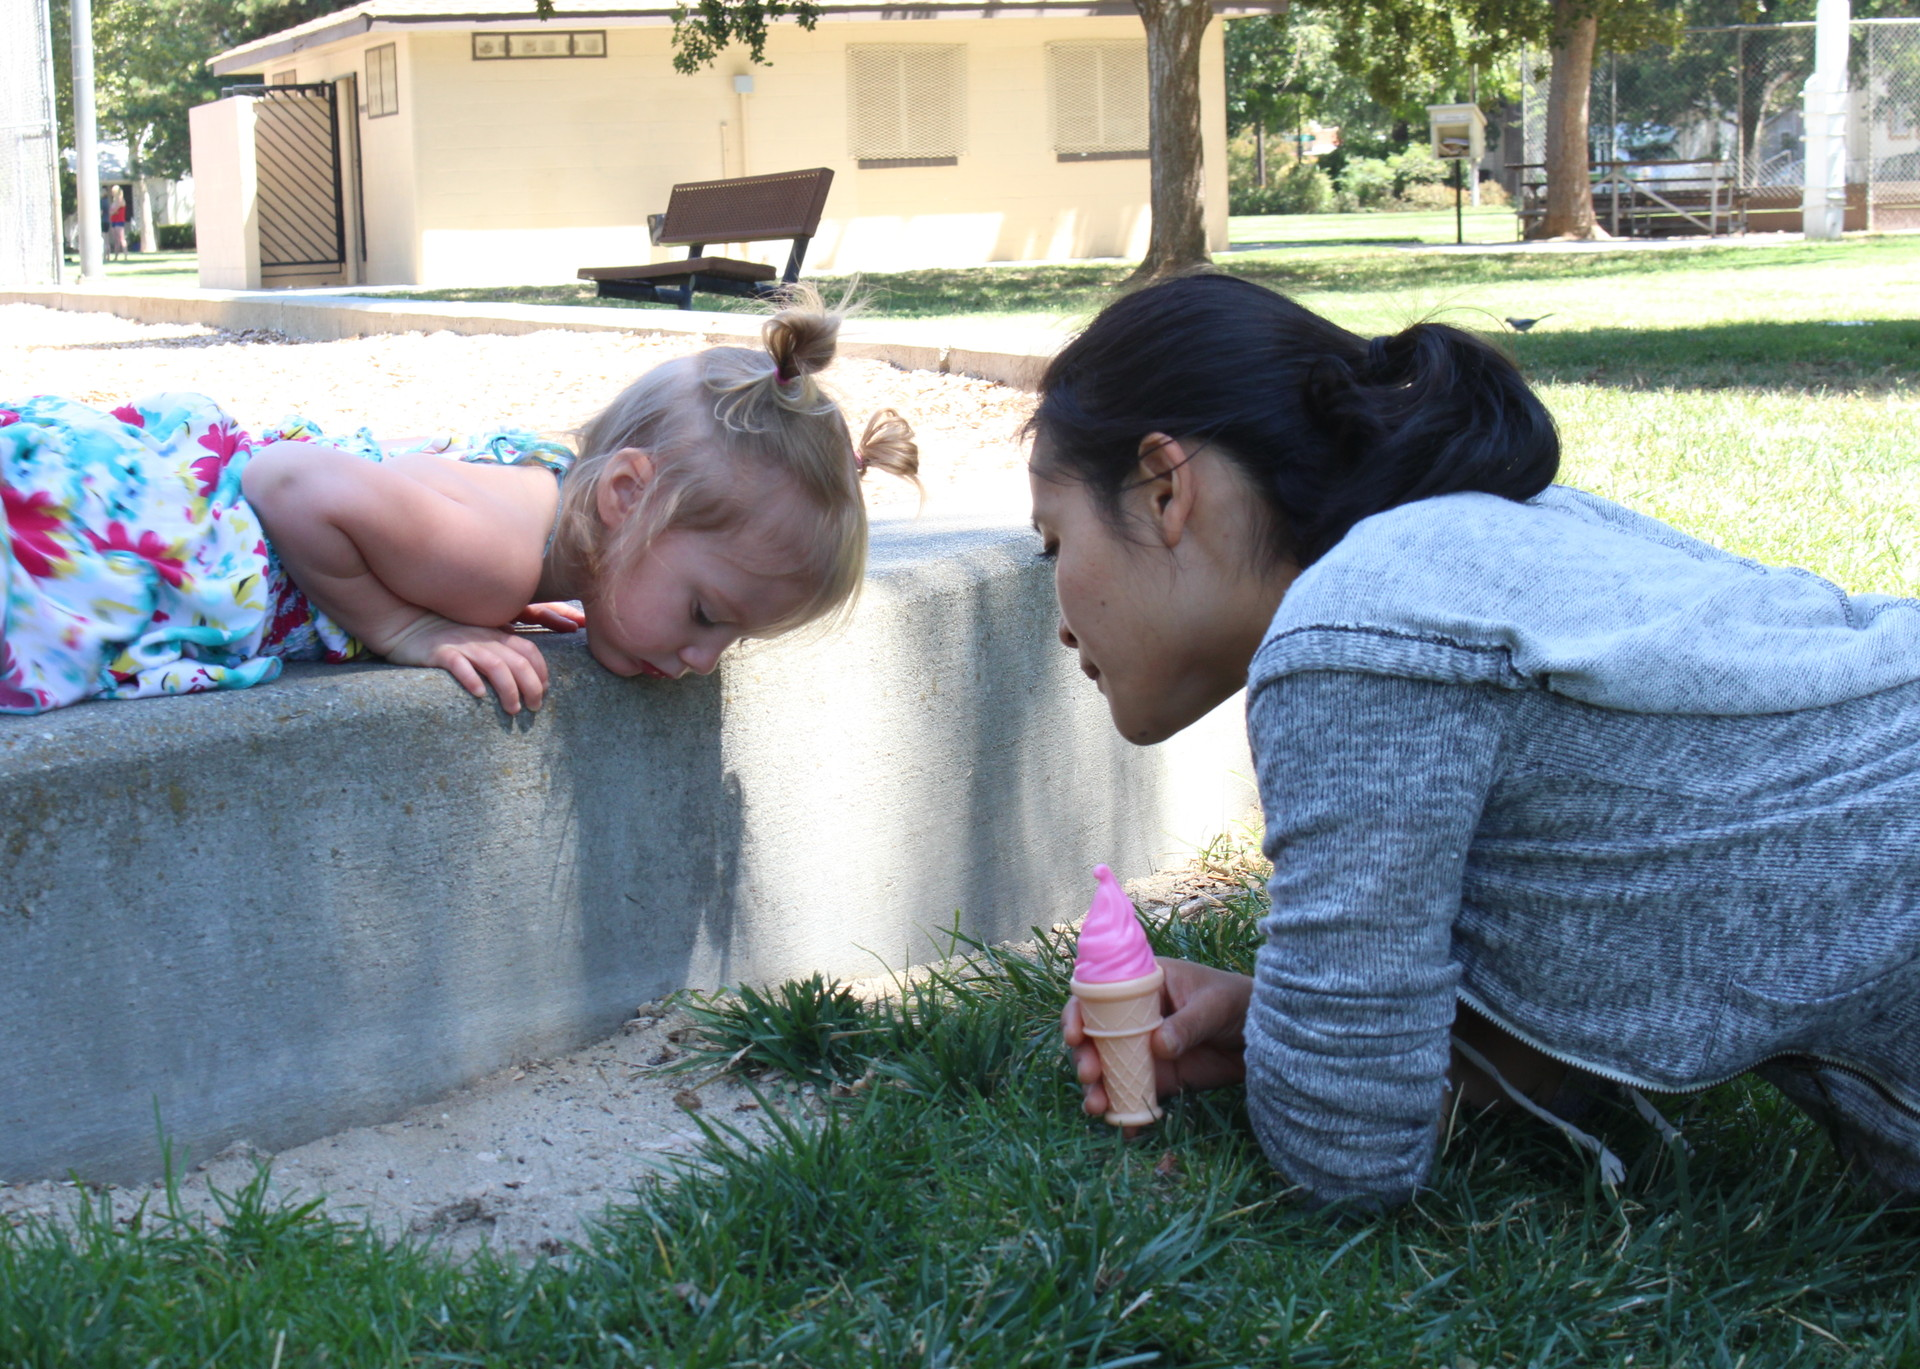 Stephanie Okada, an occupational therapist, and Isabella look for ants near a playground in the Sacramento area, as part of Isabella's weekly play and speech therapy session. Donita Escamilla, who became a foster parent for Isabella and recently adopted her, says therapy is helping the toddler develop her emotions and social skills.